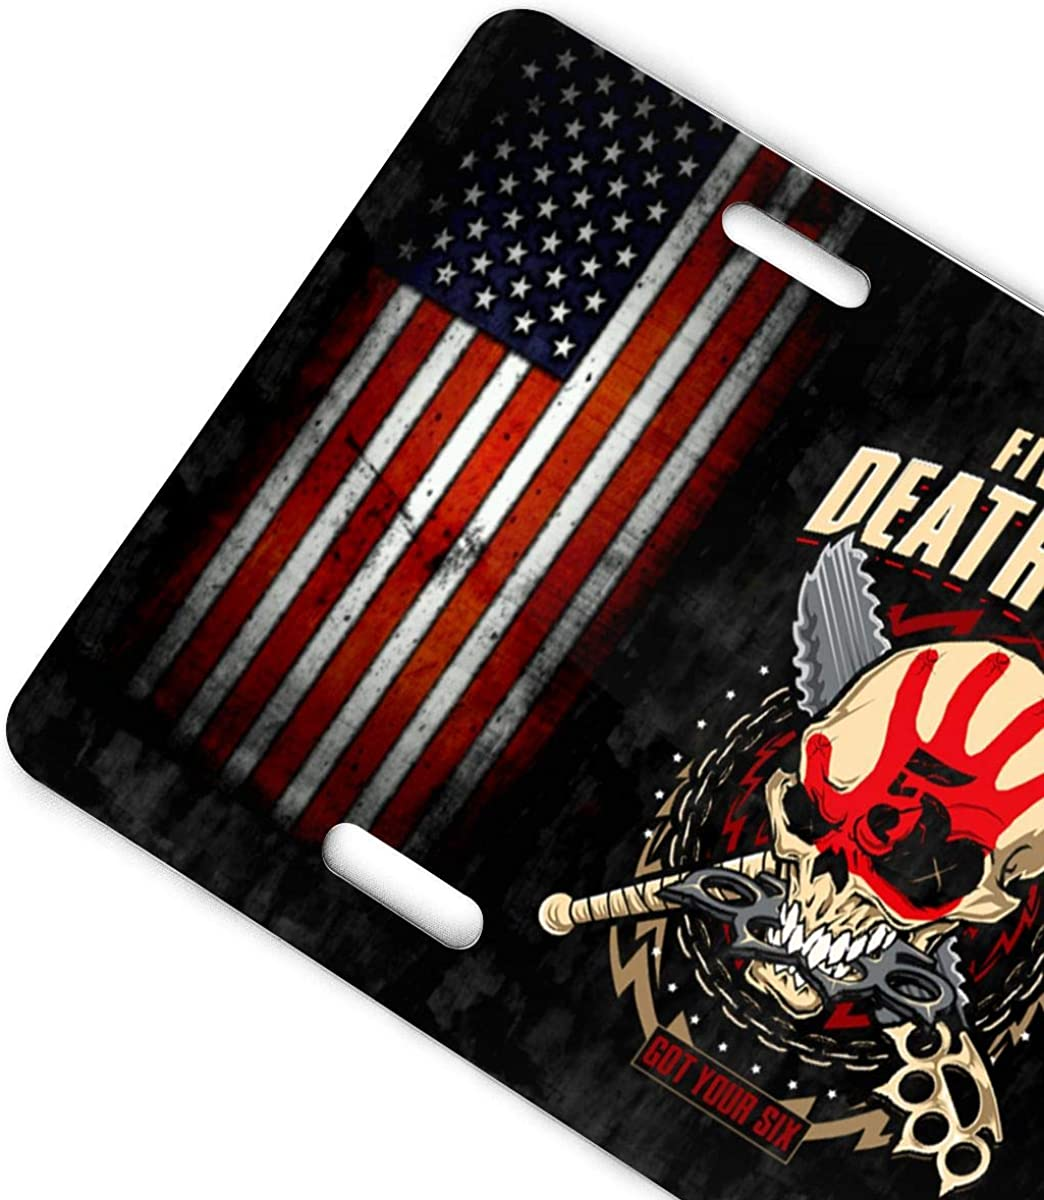 D0zopazkw License Plate Cover Funny License Plate 12 X 6 Five Finger Death Punch